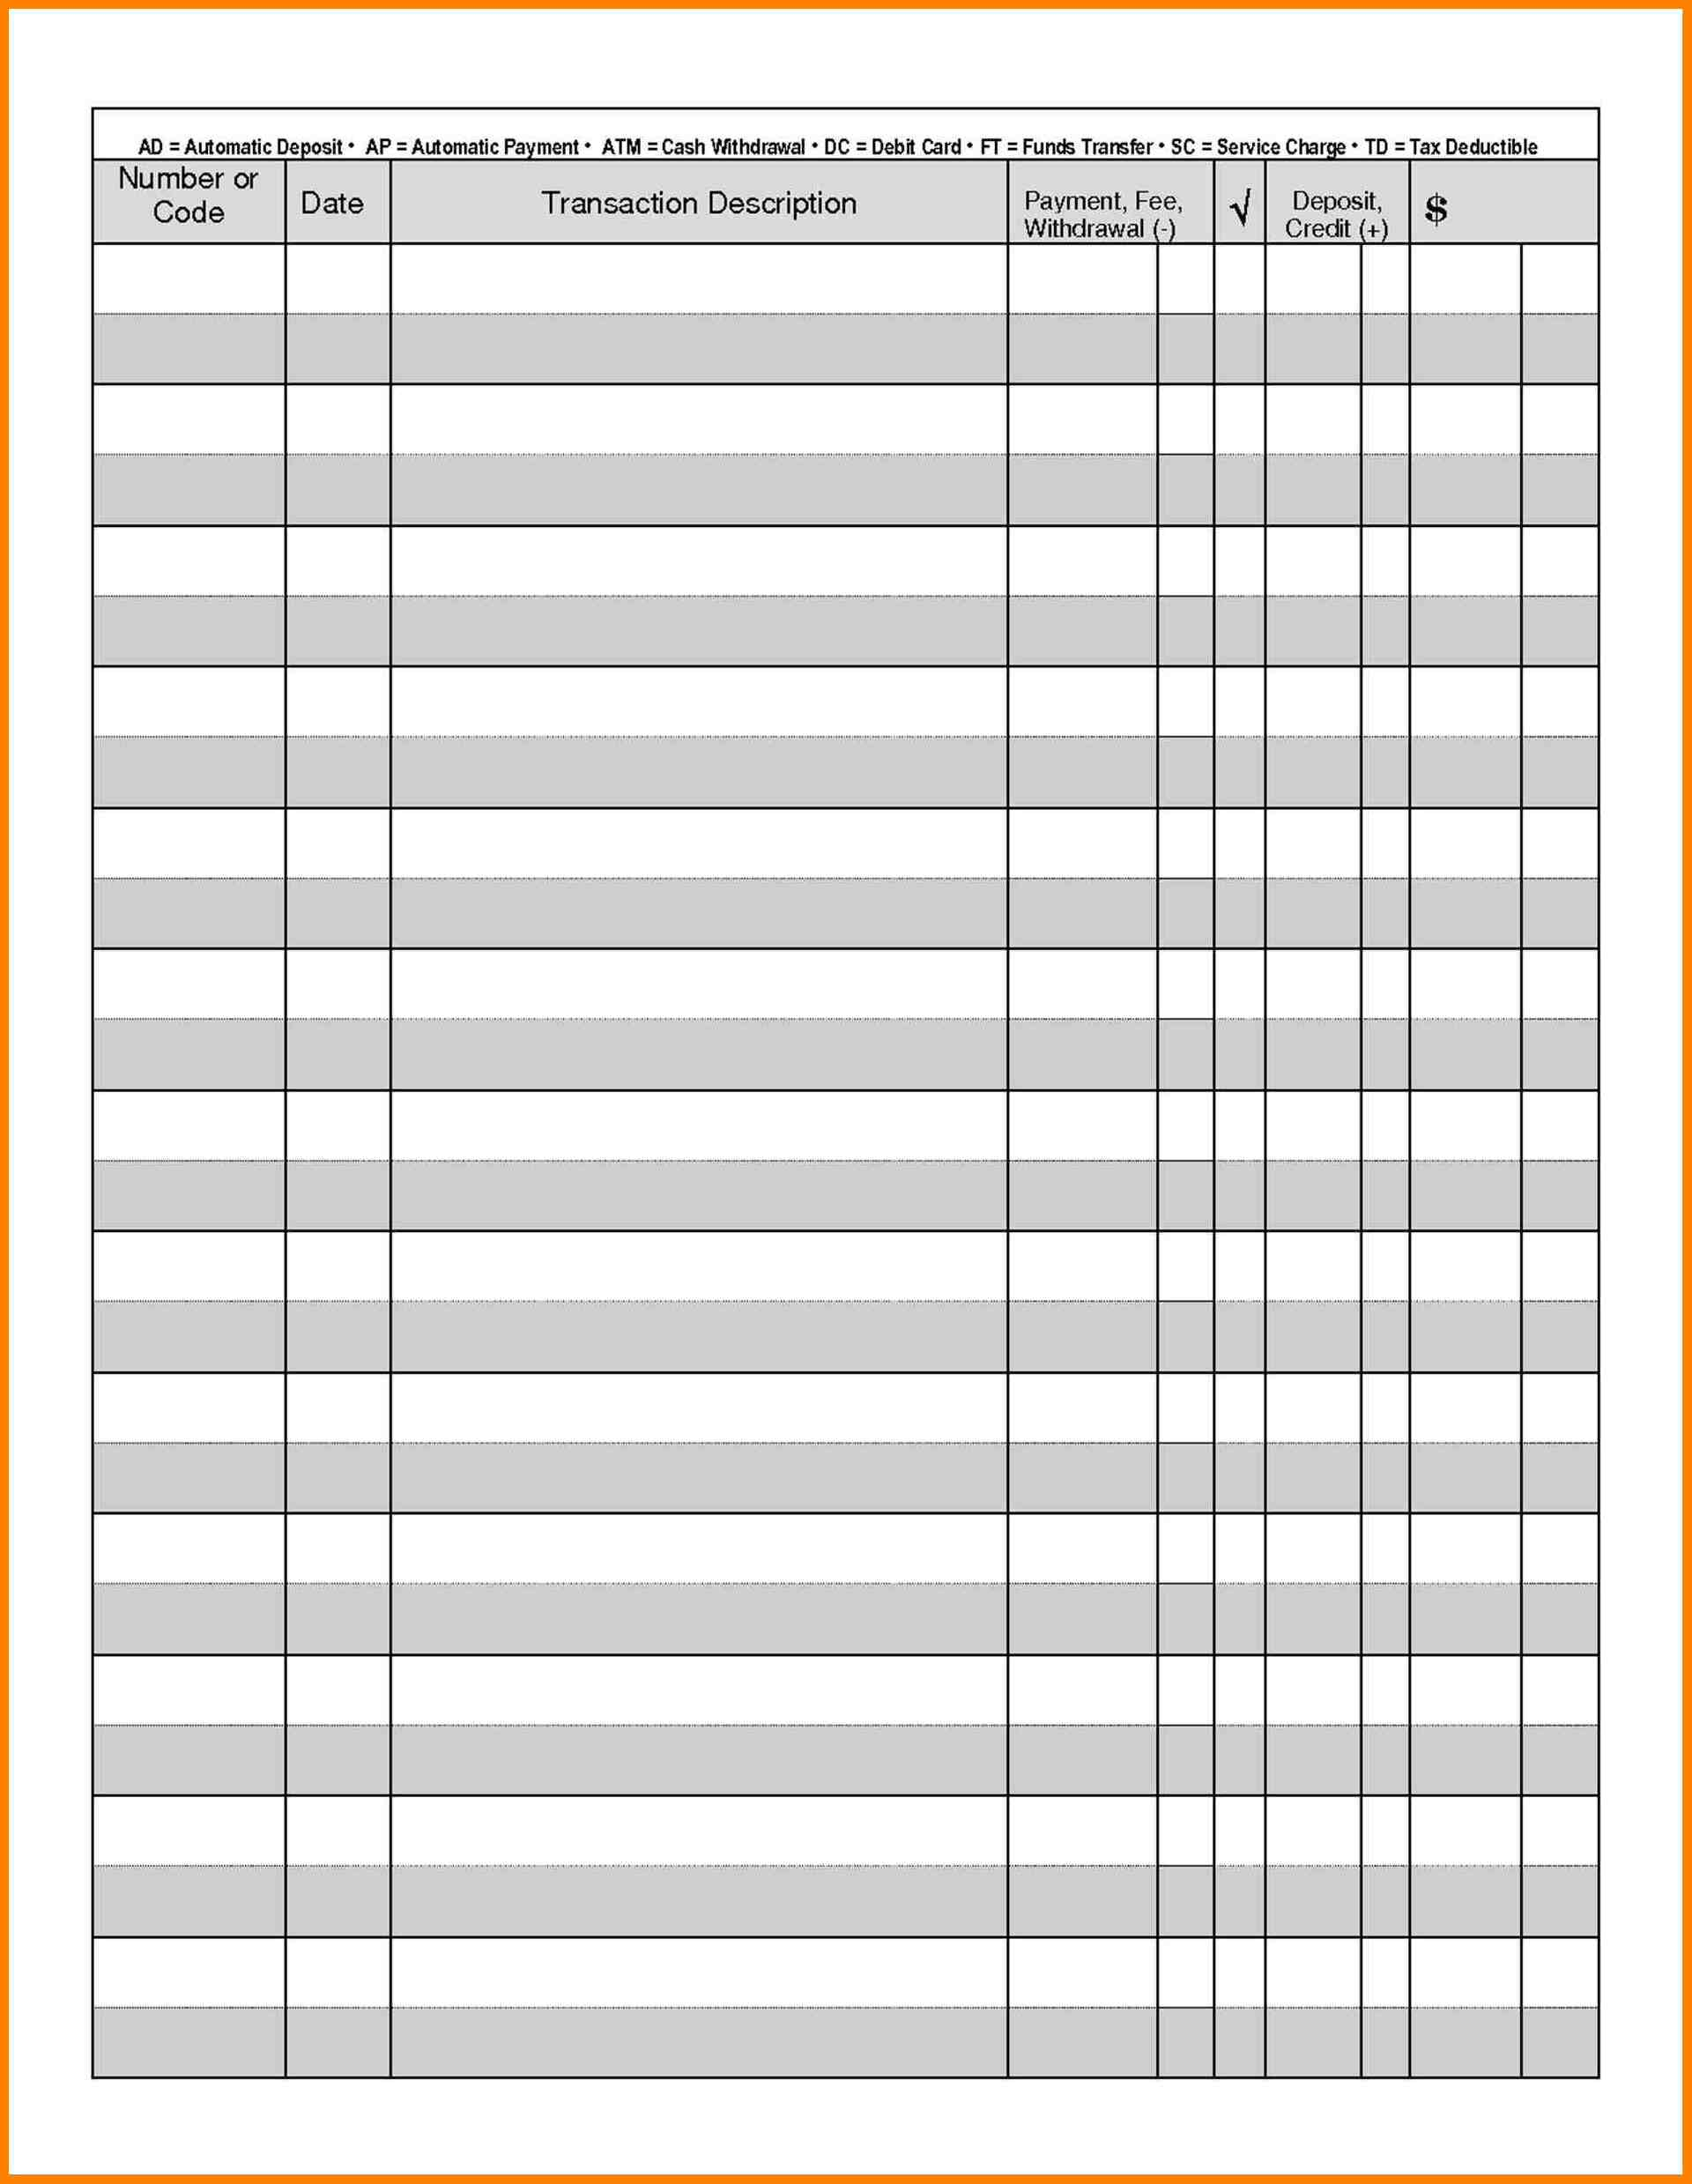 Full page check register charlotte clergy coalition business forms templates for ideal business administration free friedricerecipe Choice Image